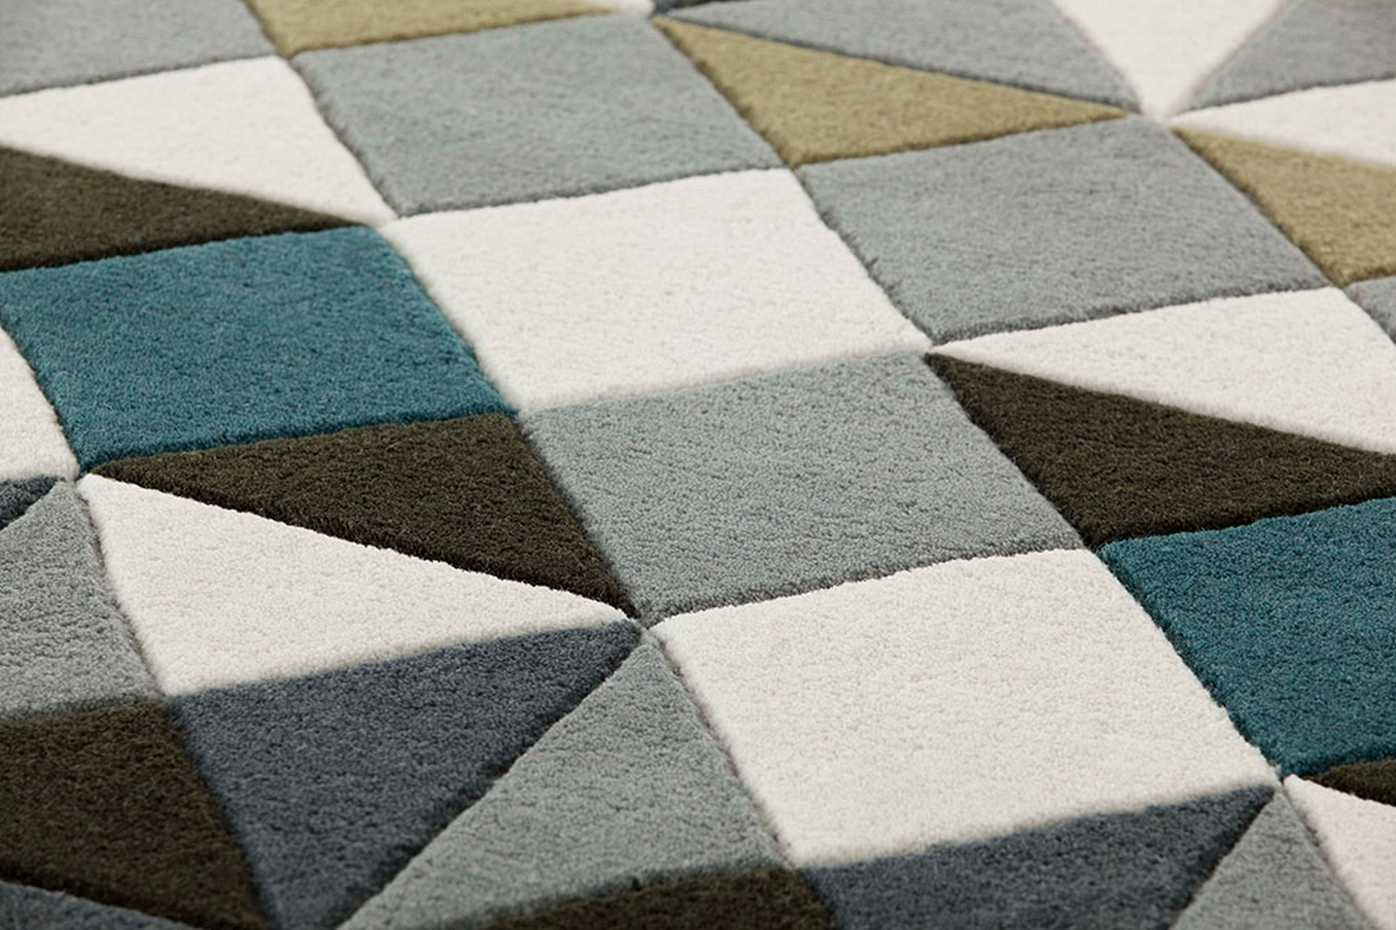 Mosaiek - Hand Tuffted by Gan Rugs product image 3